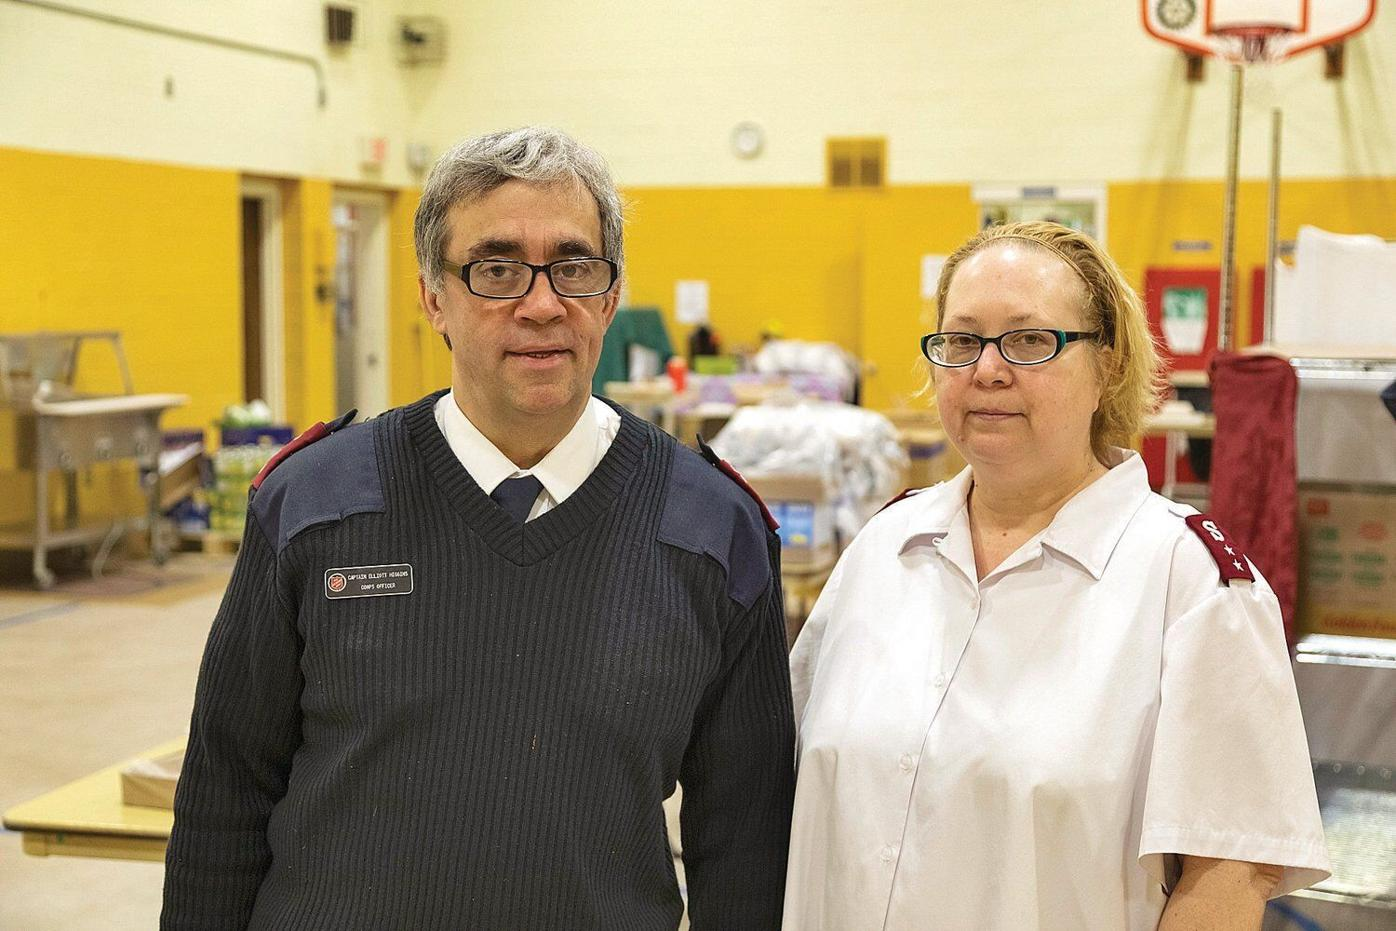 Pittsfield Salvation Army rises to meet growing need amid virus crisis